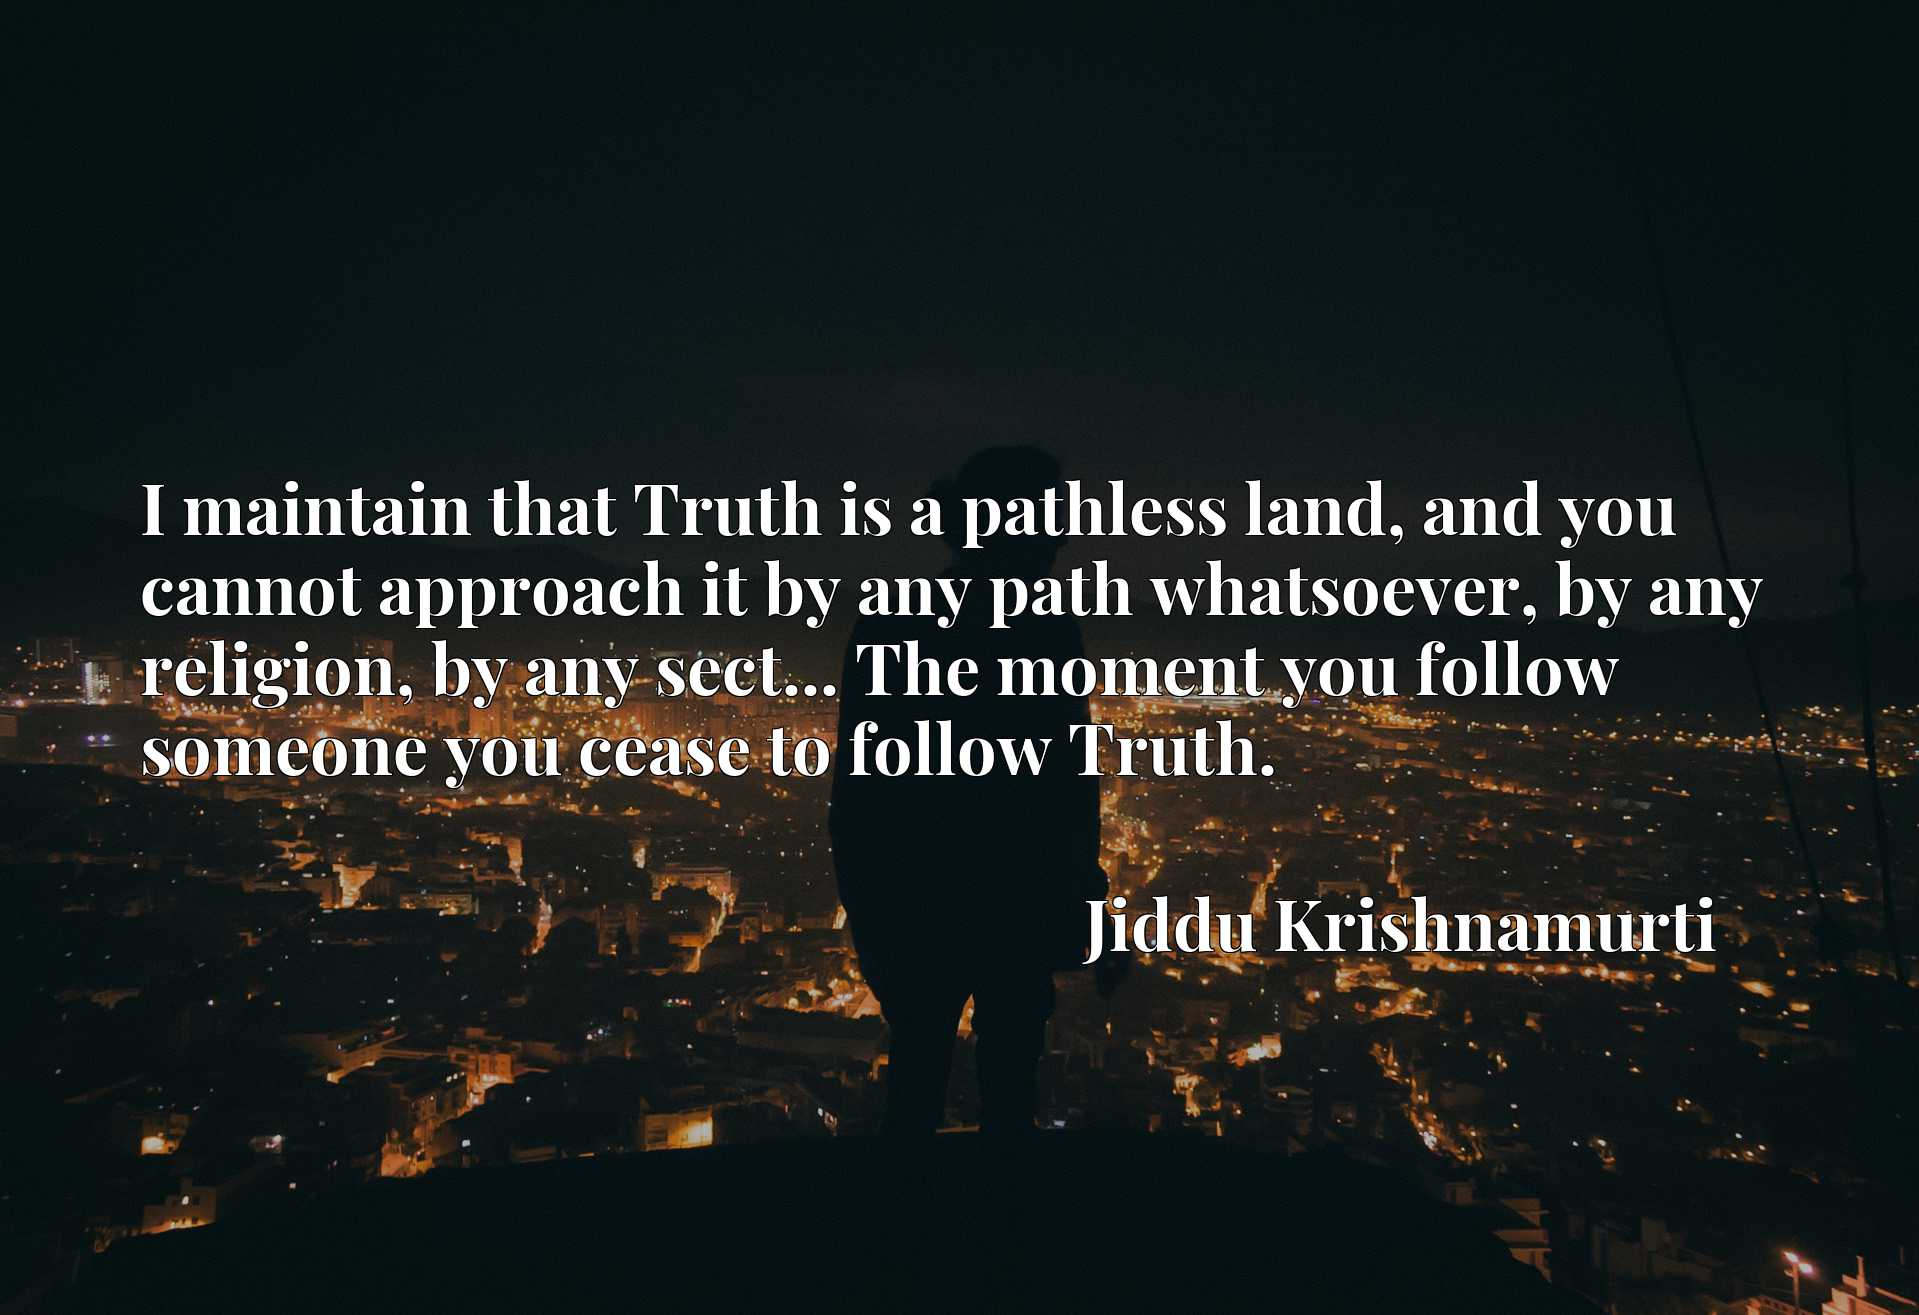 I maintain that Truth is a pathless land, and you cannot approach it by any path whatsoever, by any religion, by any sect... The moment you follow someone you cease to follow Truth.